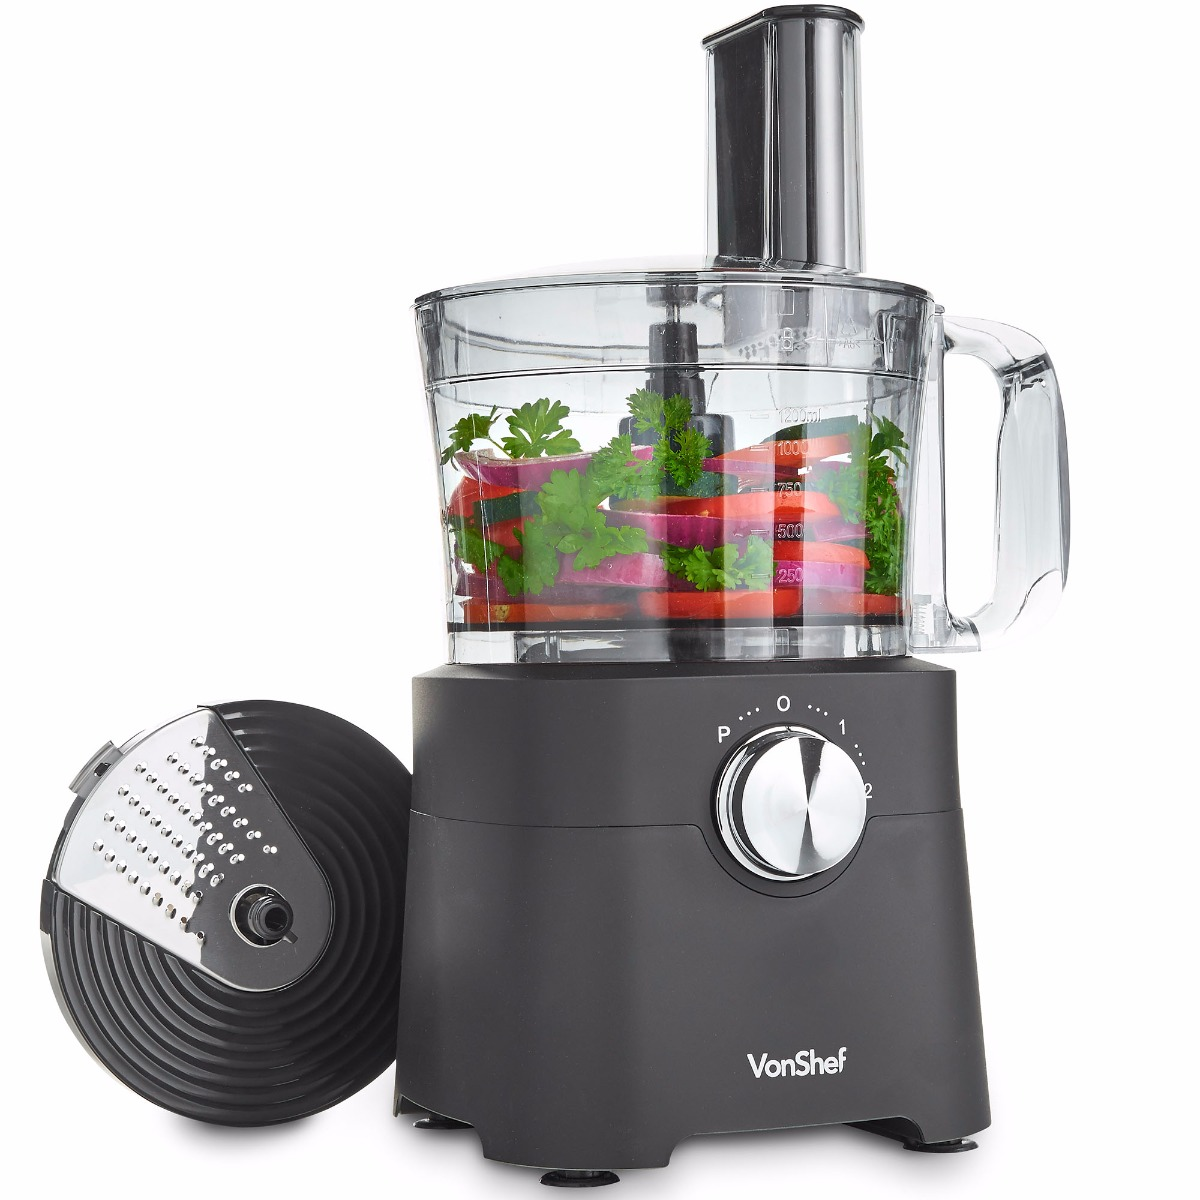 VonShef 500W 8 Cup Food Processor – Blender, Chopper, Multi Mixer Combo with Chopping Blade & Shredder Attachments